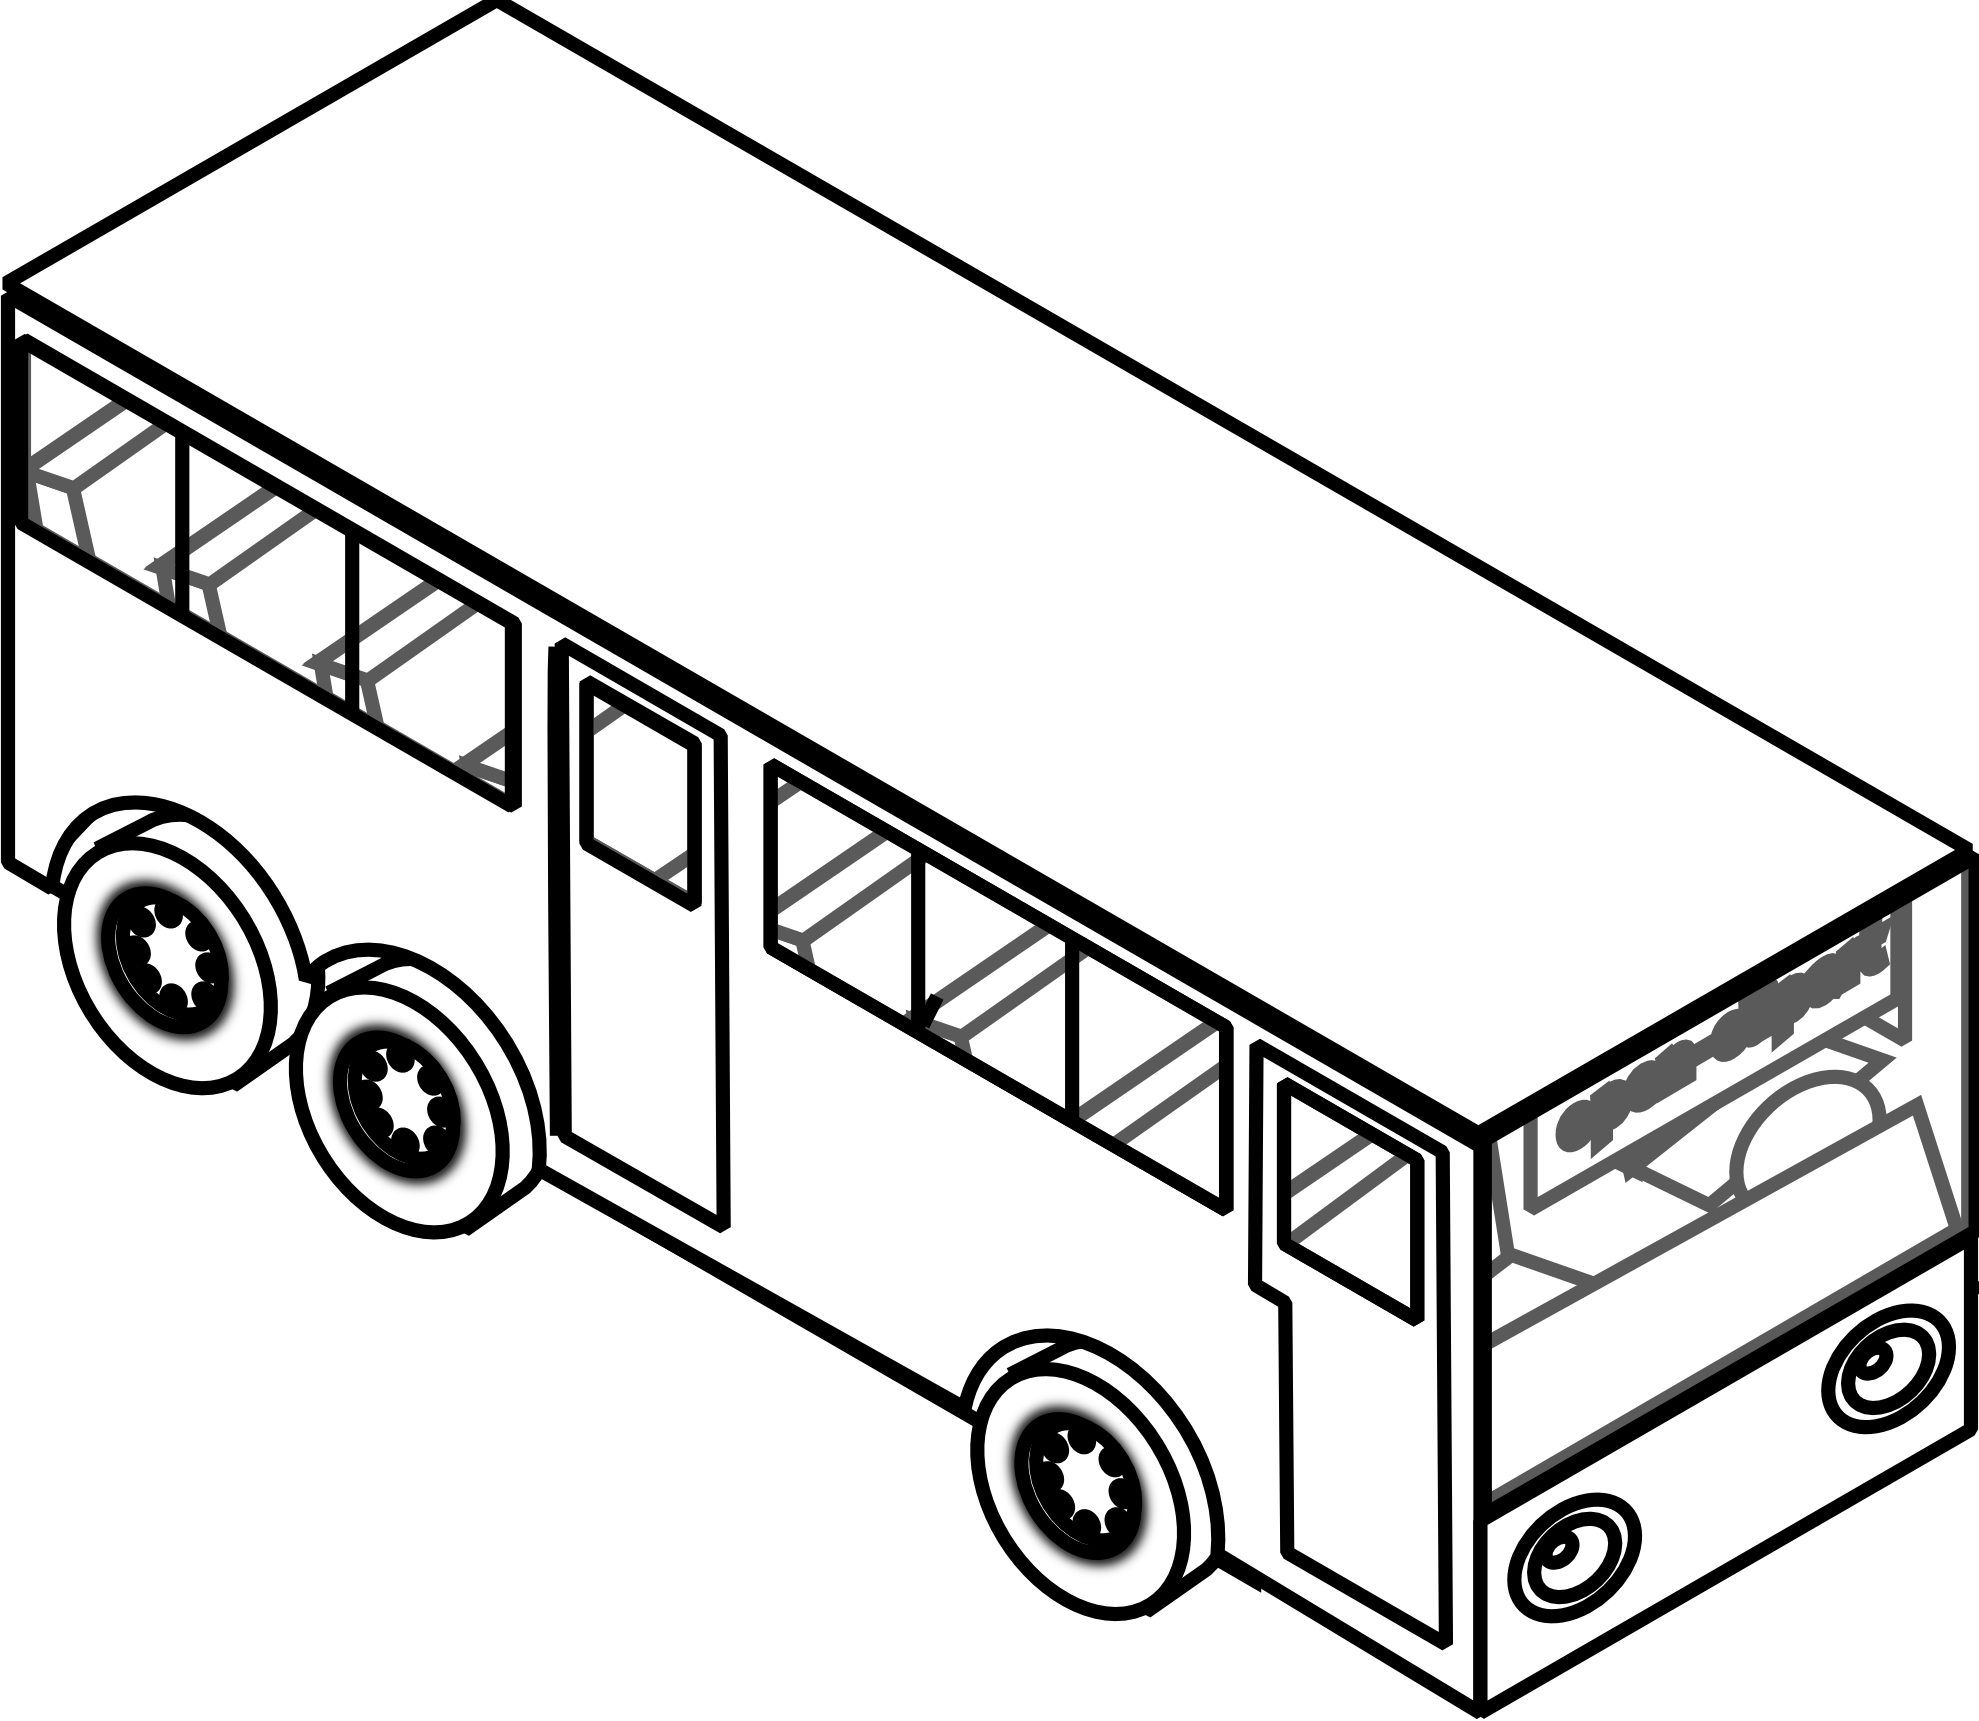 1979x1721 Bus With A Passenger Capacity Of Many Bus Coloring Pages